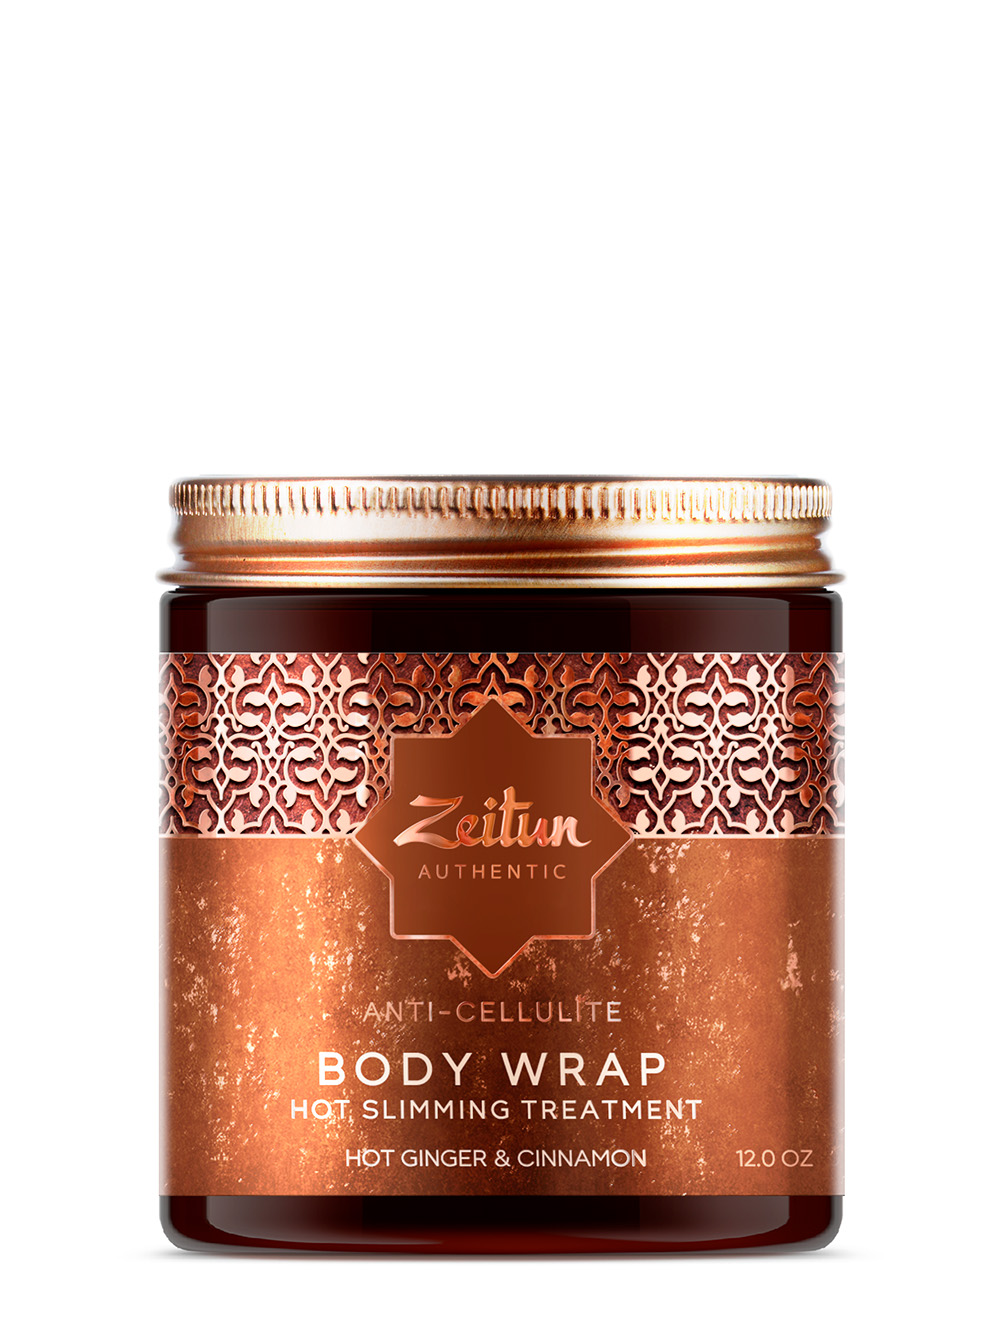 Anti-cellulite Body Wrap with Hot Ginger and Cinnamon for hot slimming treatment.